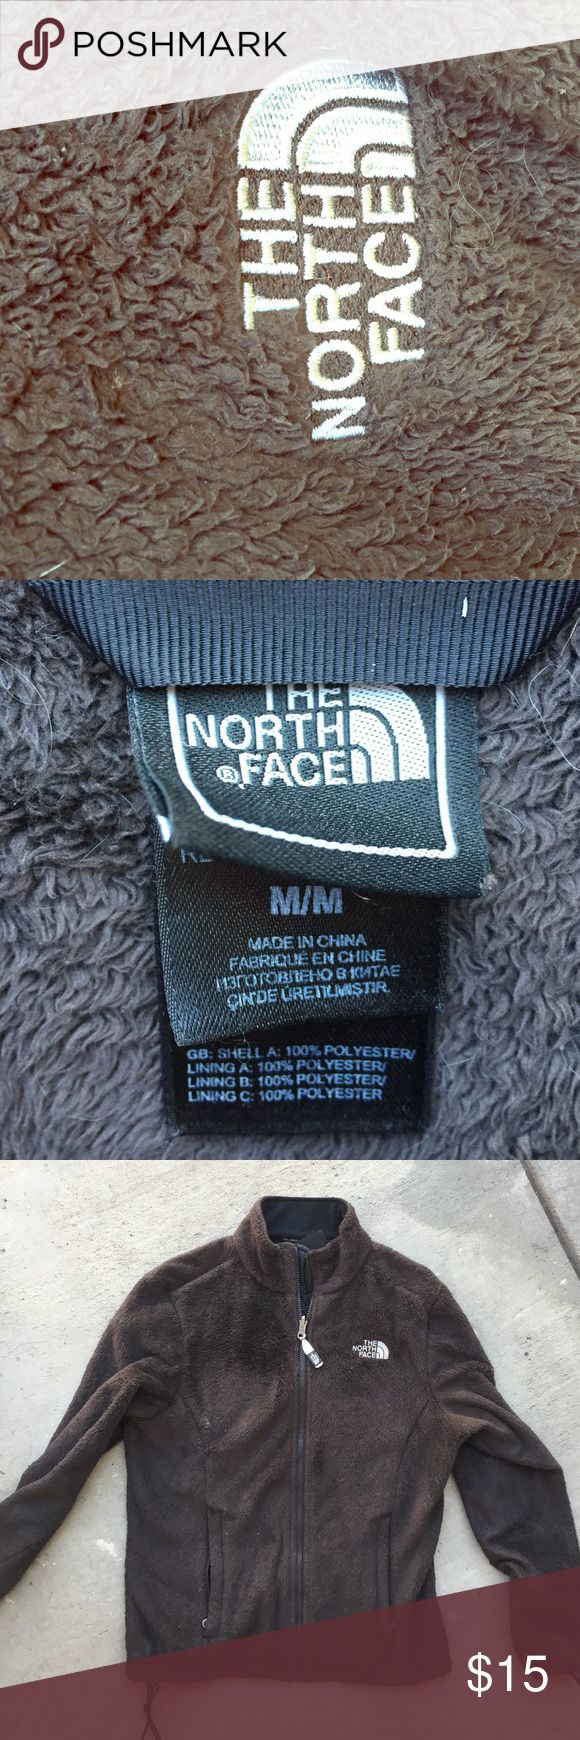 Brown North Face Jacket This is kind of old. One of the black plastic pieces that draws in the waist band is broken but it still works if you like your jacket tighter around the bottom. It's definitely been worn, which is why I'm selling it so cheap North Face Jackets & Coats